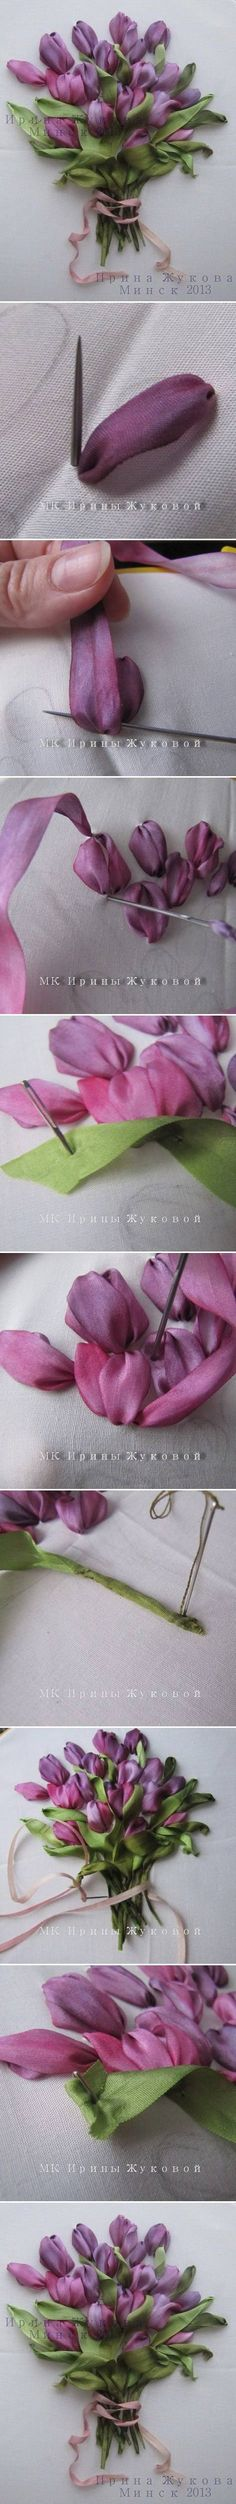 DIY Embroidery Ribbon Flower.